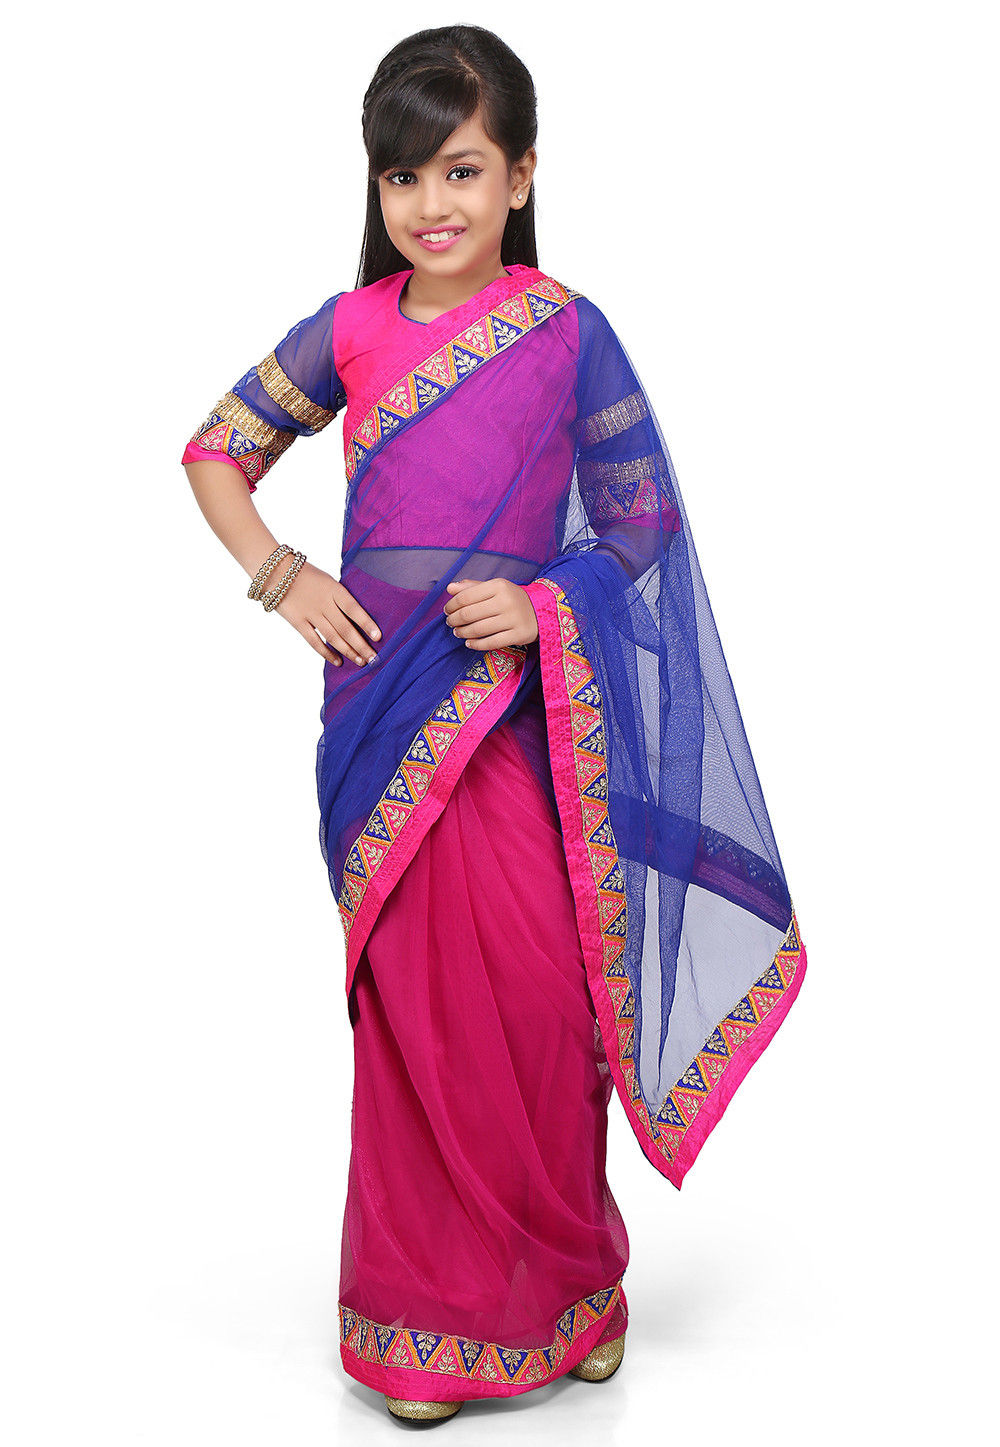 Embroidered Pre Stitched Net Saree in Royal Blue and Fuchsia